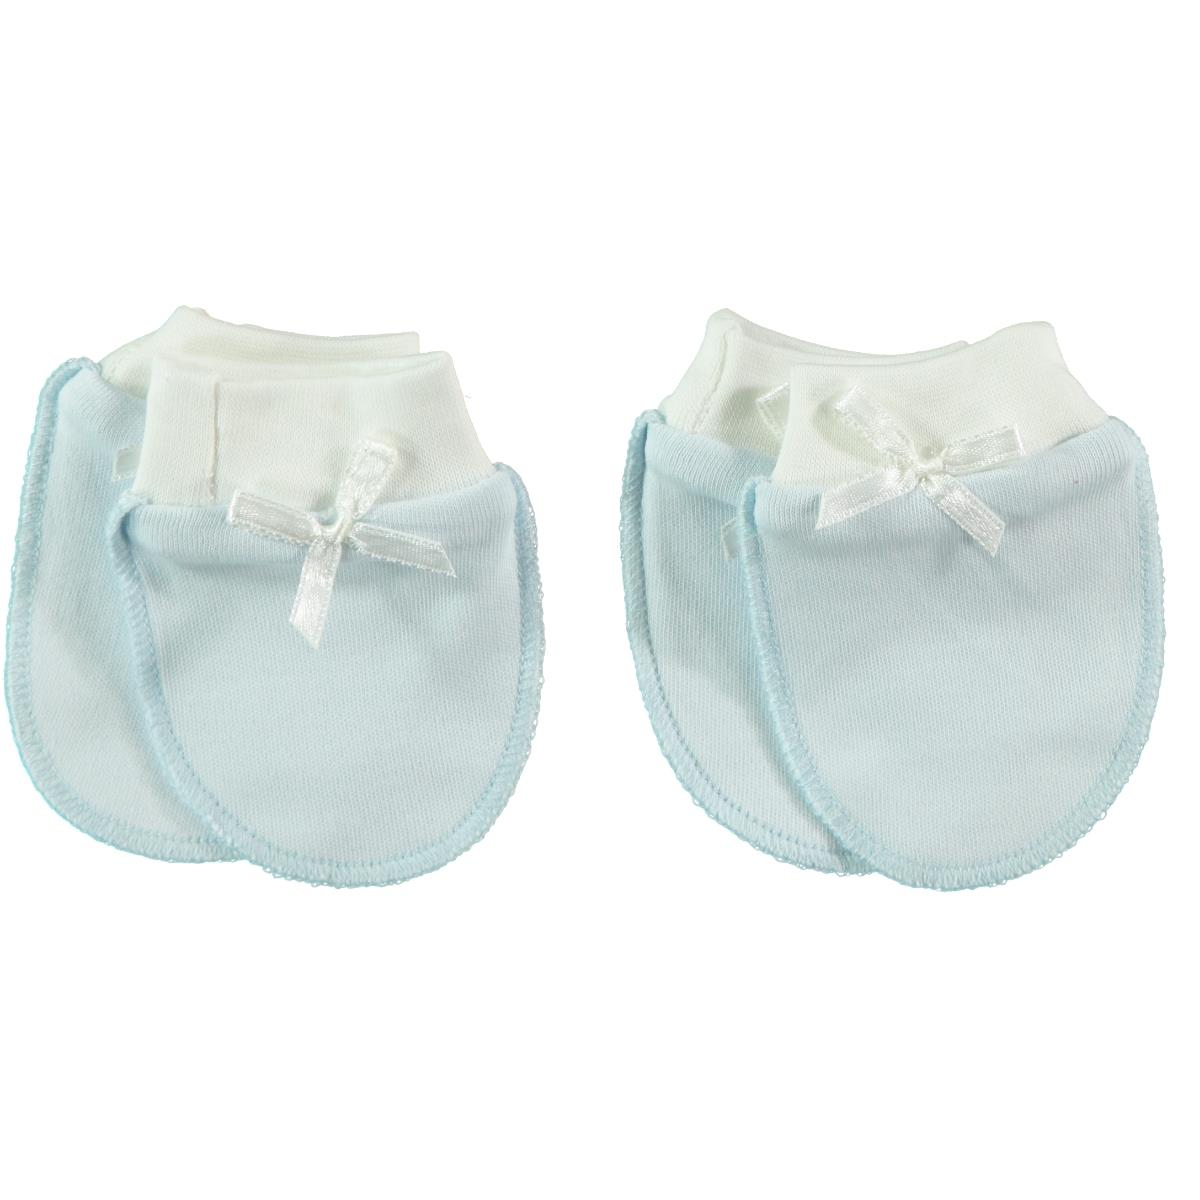 T.F.Taffy Baby Taffy 2-0-24 Months-Blue Gloves